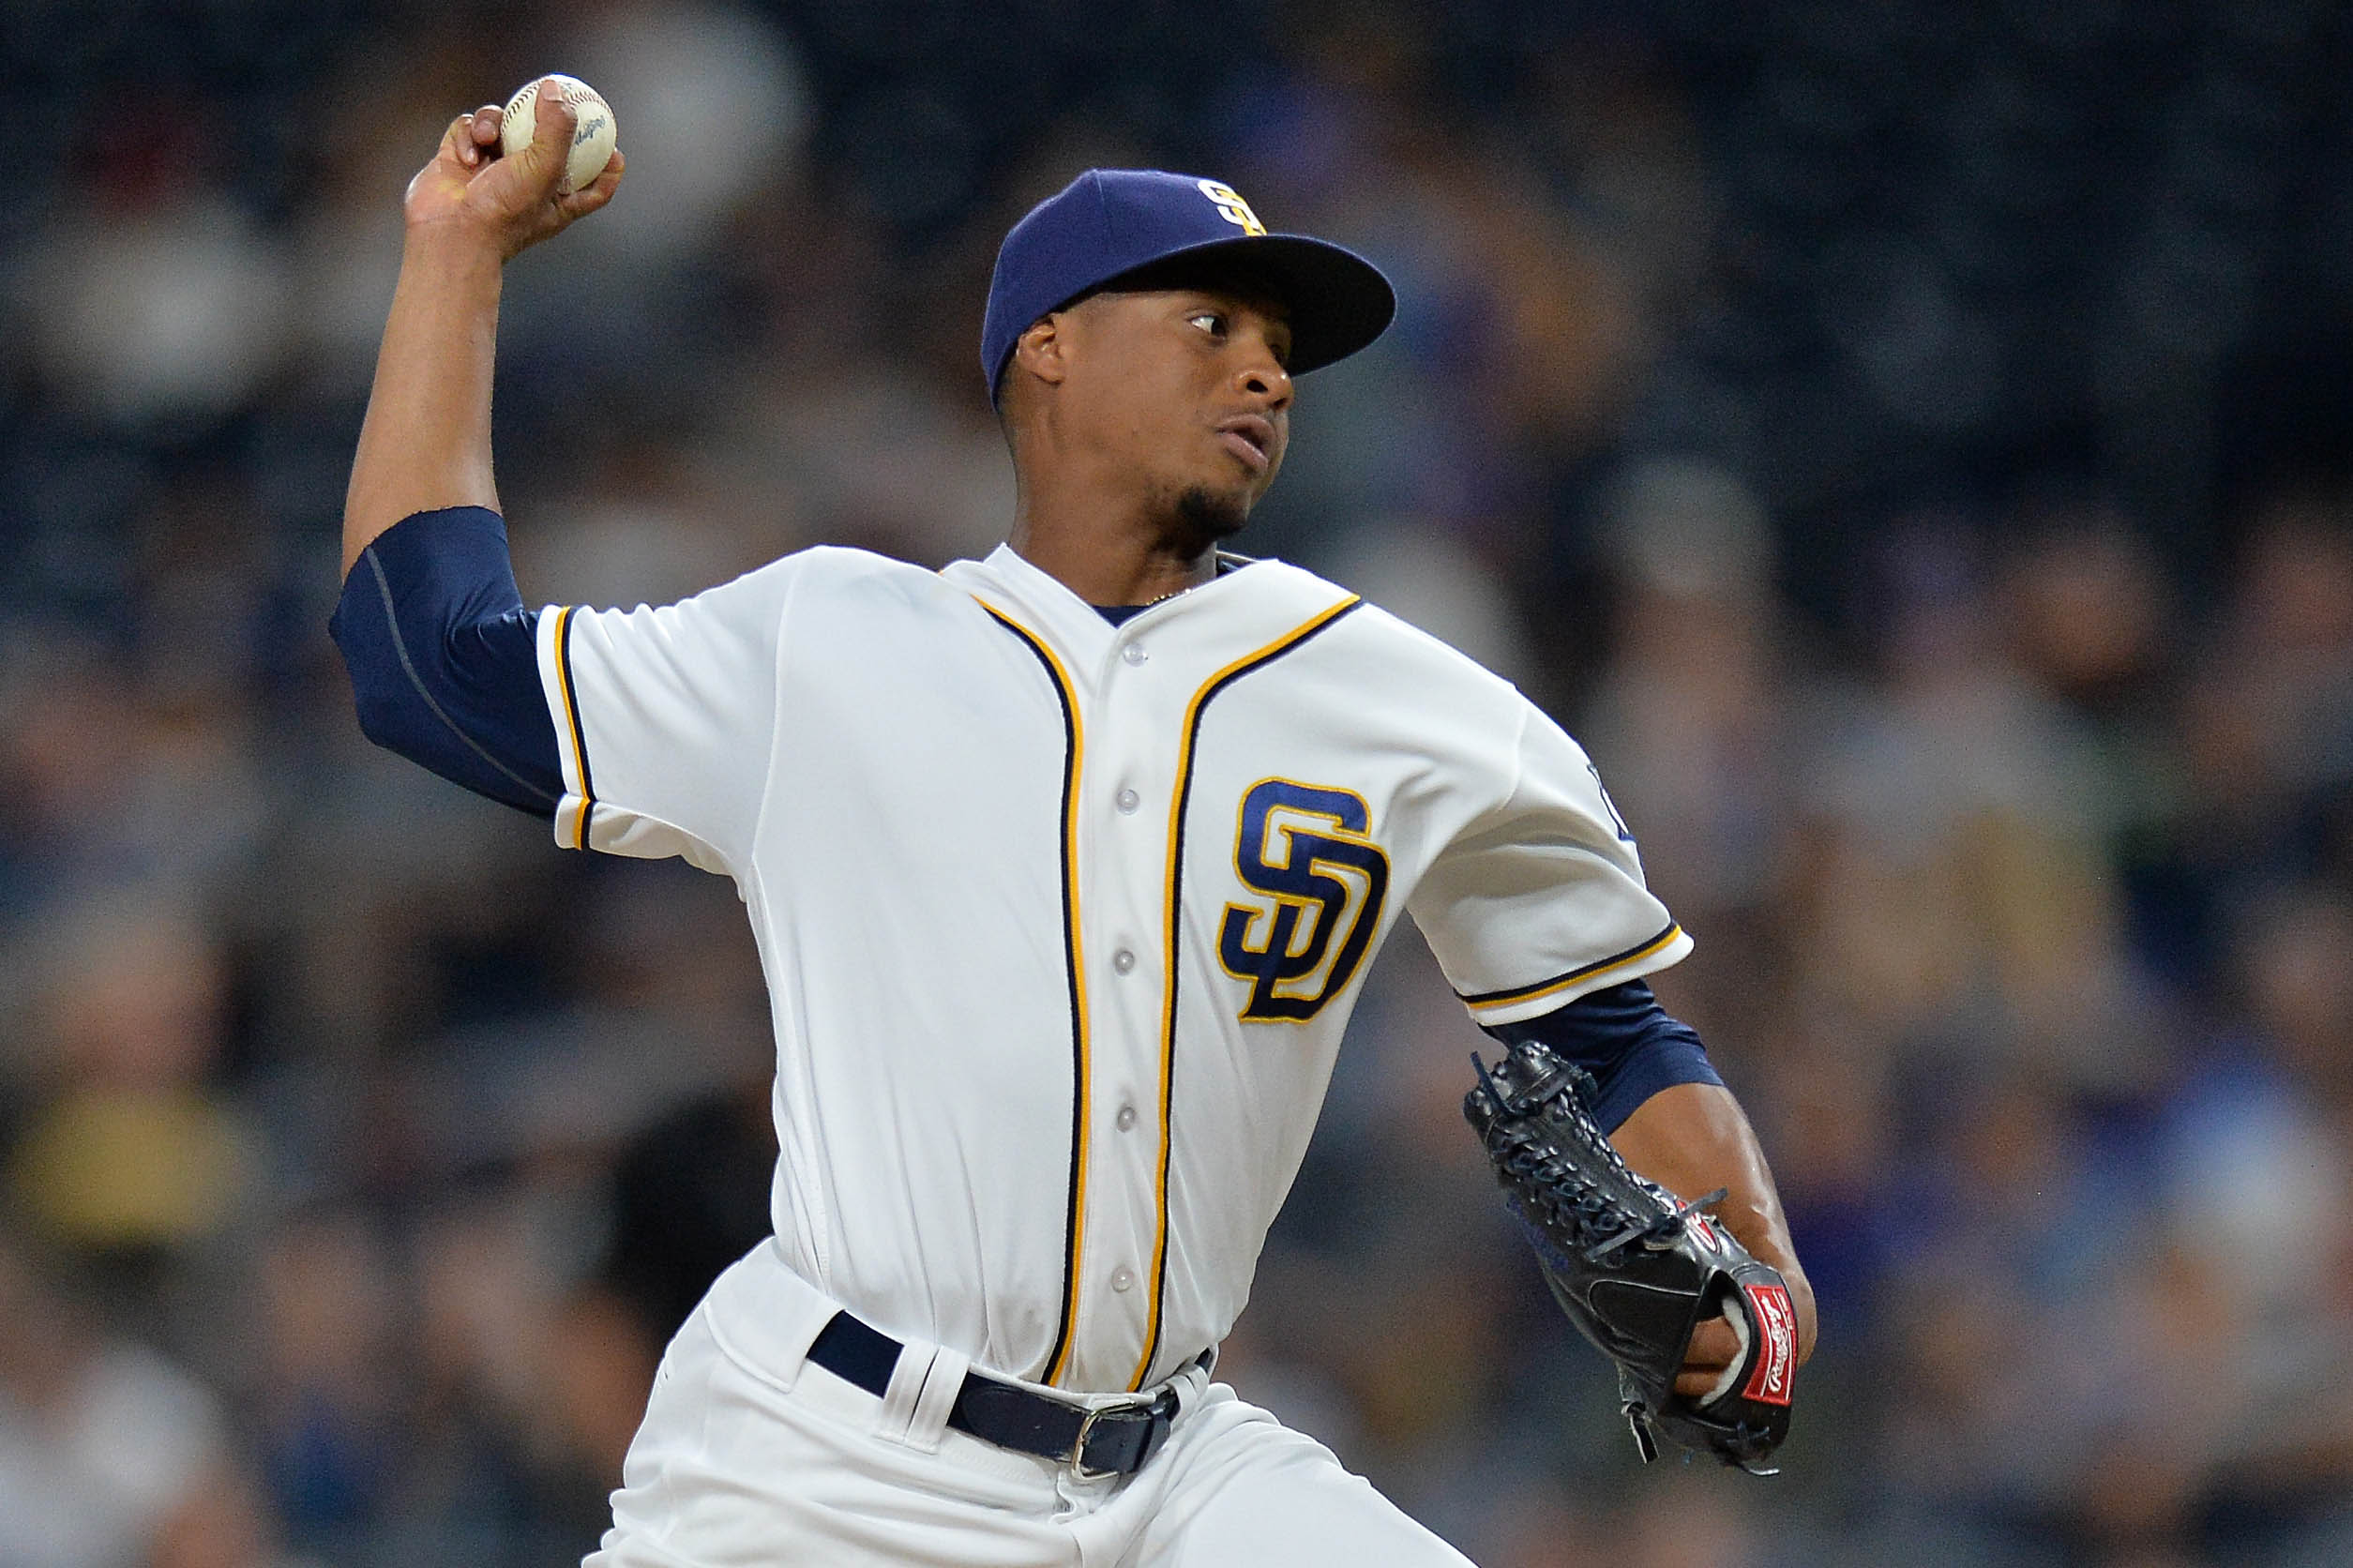 Margot, Chacin lead Padres over Bumgarner and Giants 2-1